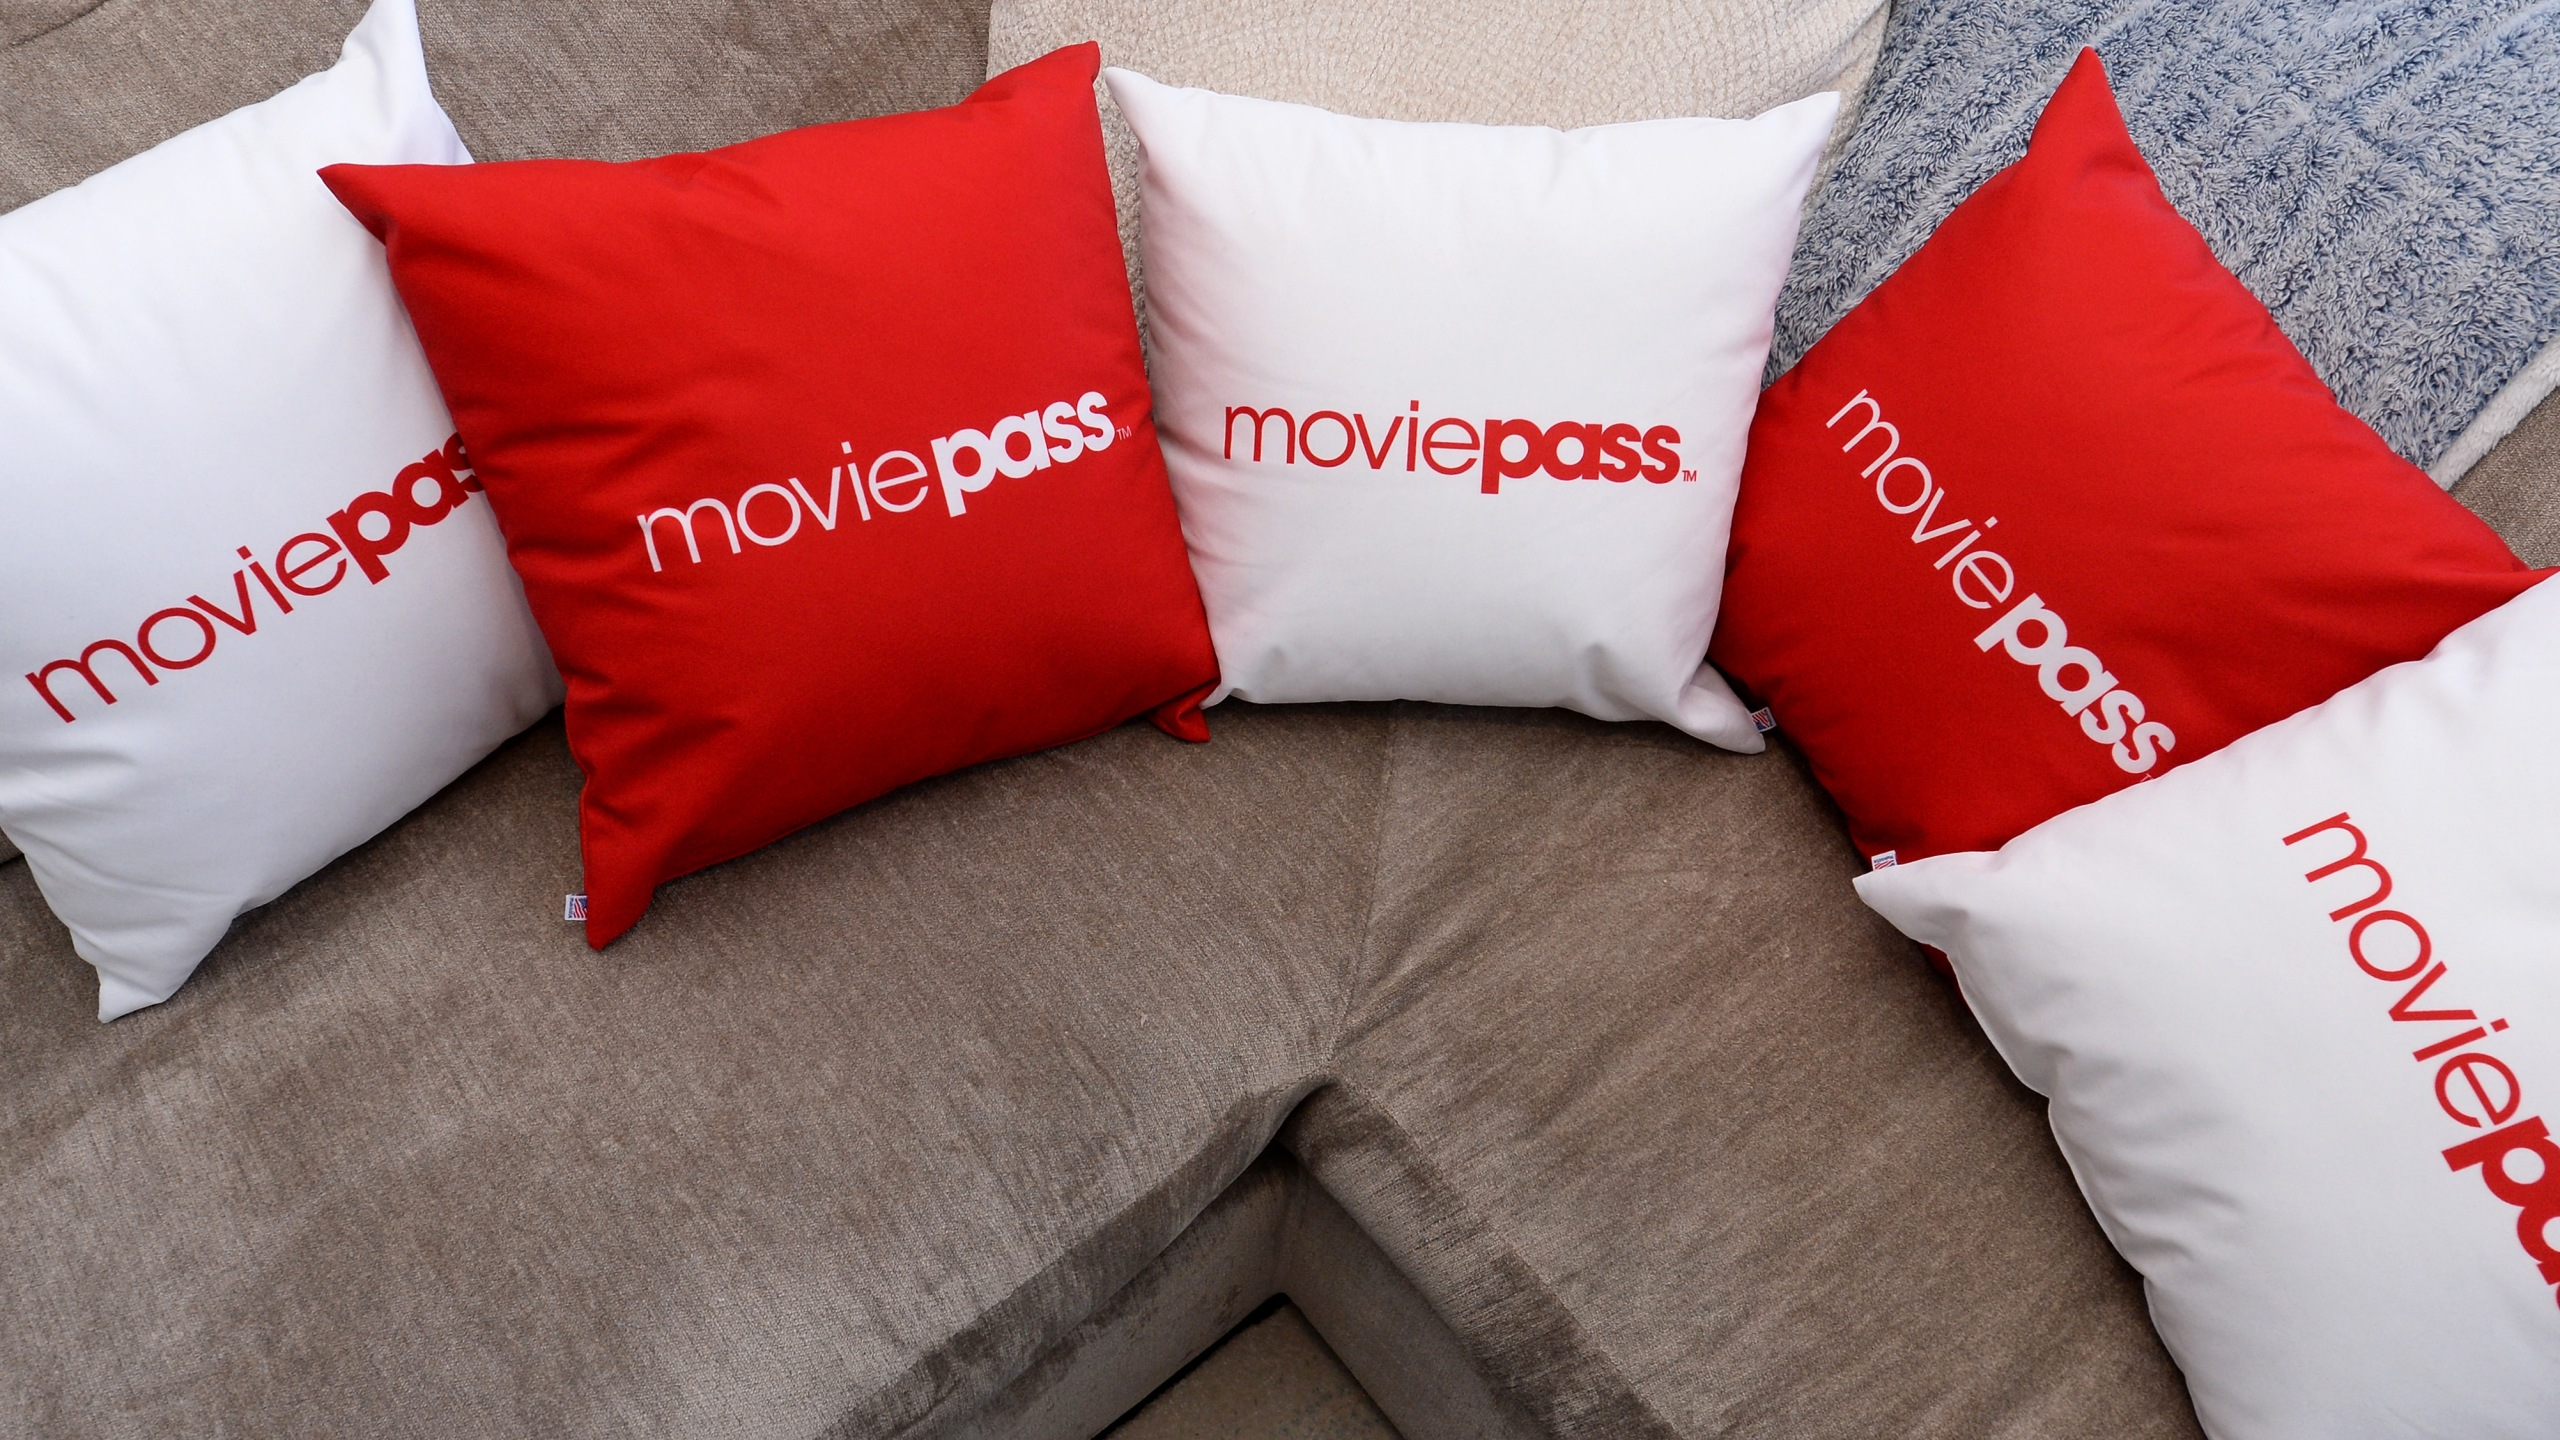 A view of signage at the MoviePass House Park City during Sundance 2018 on January 21, 2018 in Park City, Utah. (Credit: Daniel Boczarski/Getty Images for MoviePass)